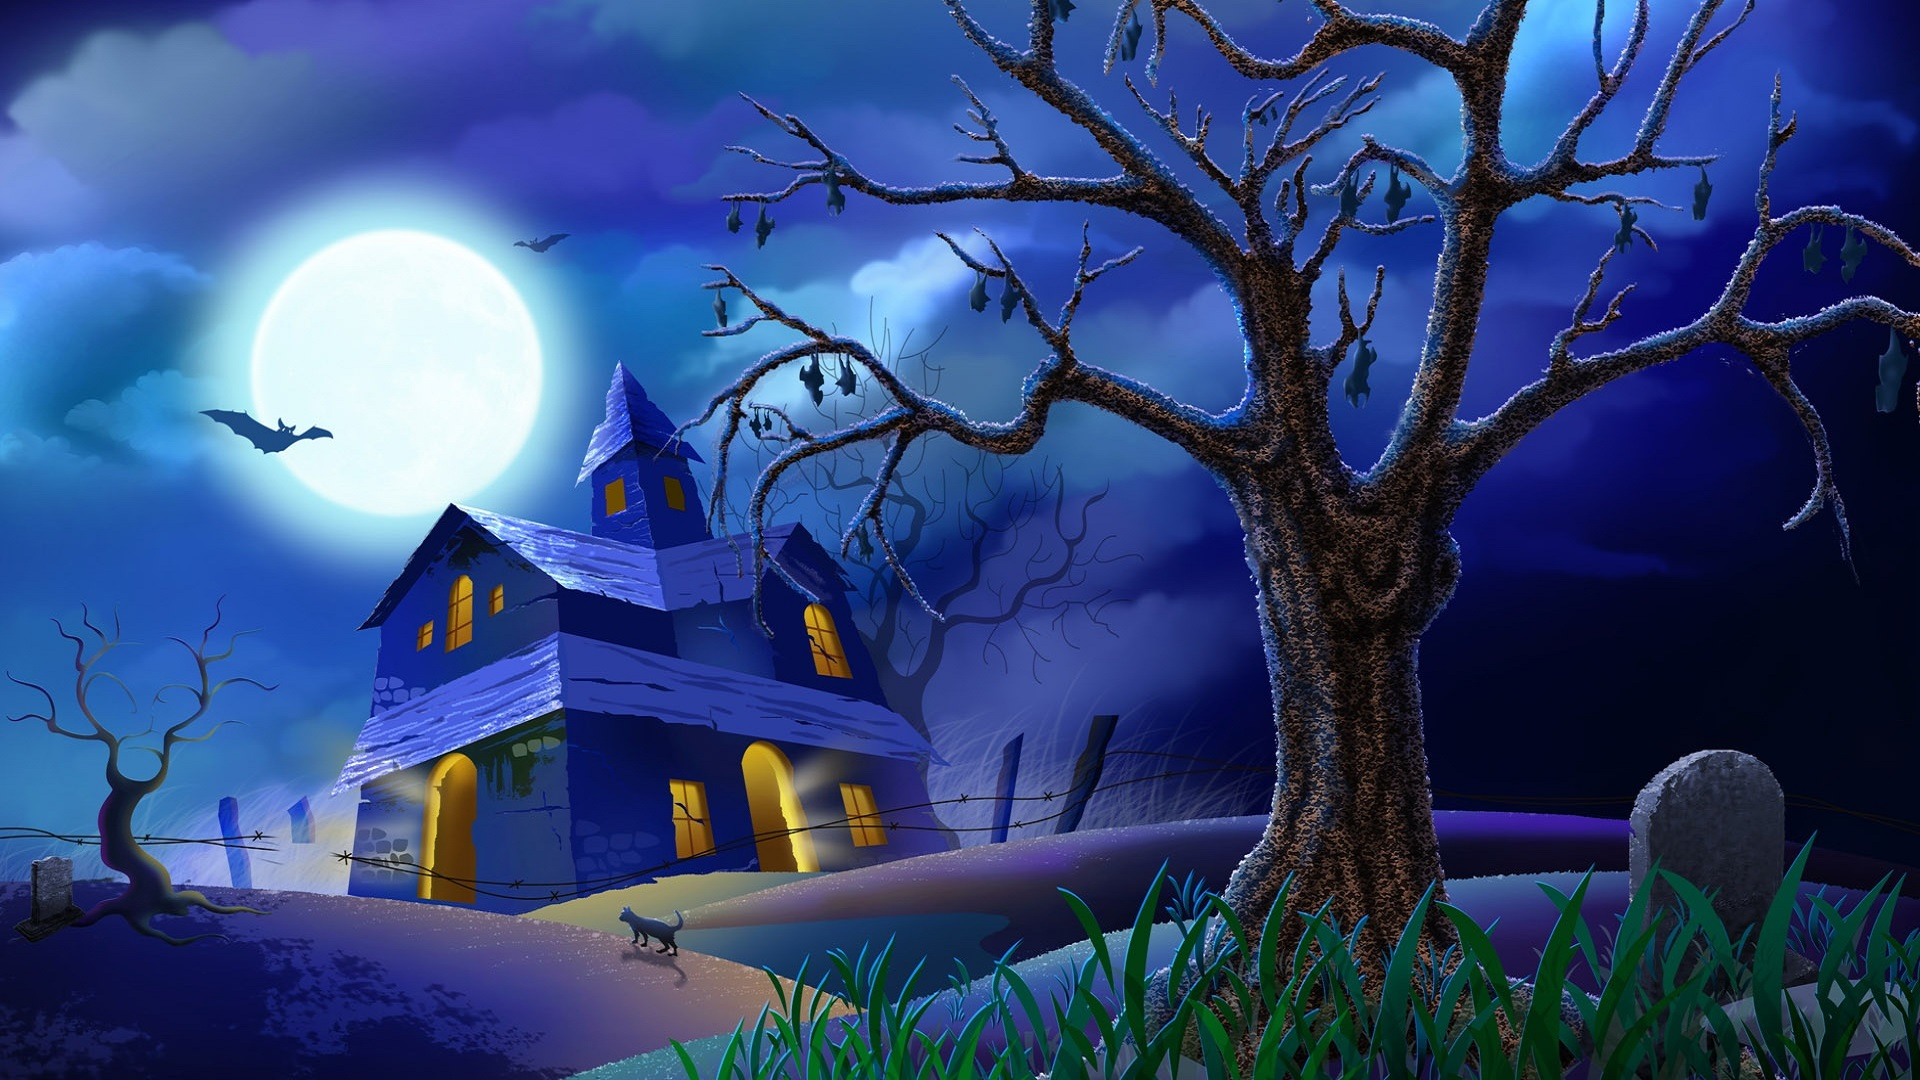 Beautiful Wallpaper High Resolution Halloween - Beautiful-Halloween-images-in-blue  Snapshot_5206.jpg